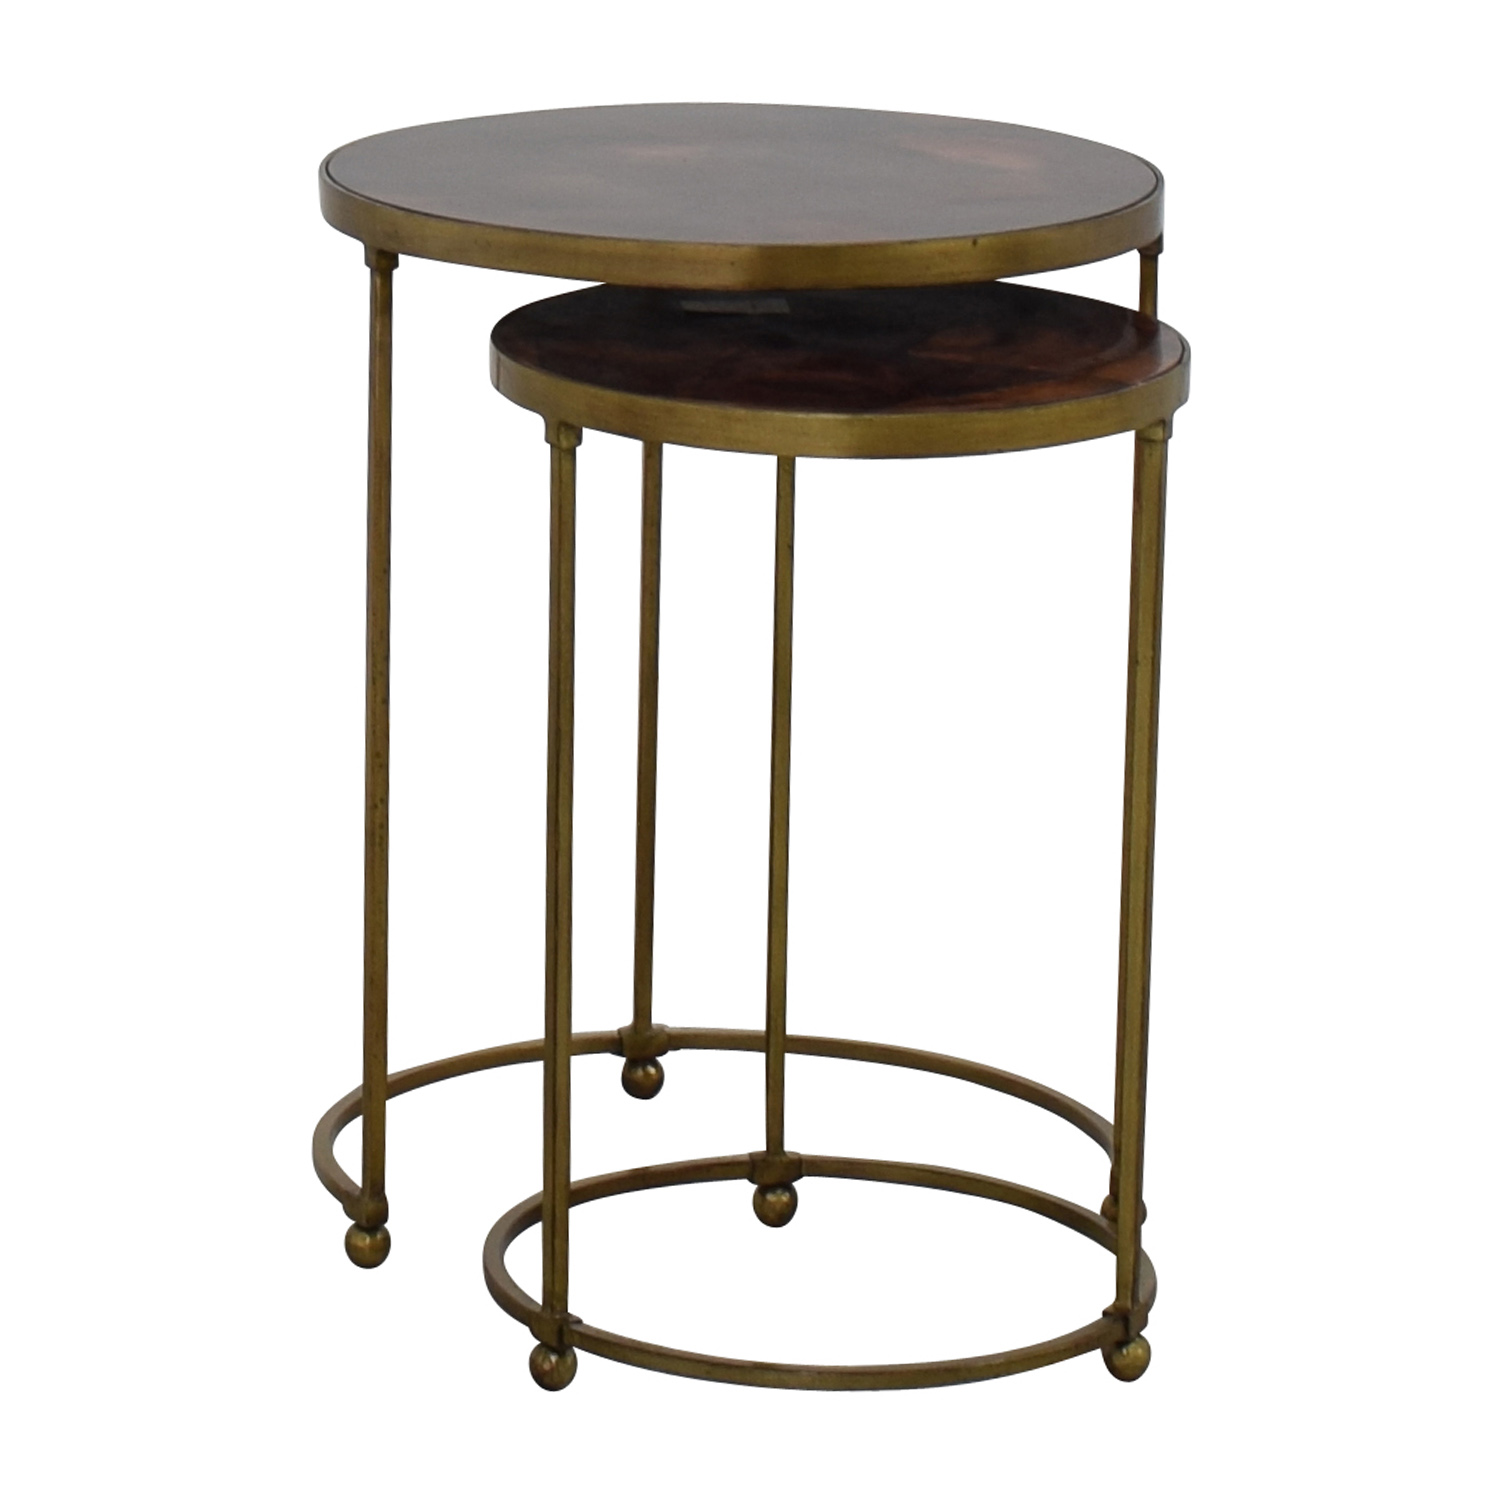 off carpet and home nesting round bronze used brass accent tables table ethan allen pineapple swivel chairs for living room gold legs patio umbrella lights affordable lamps